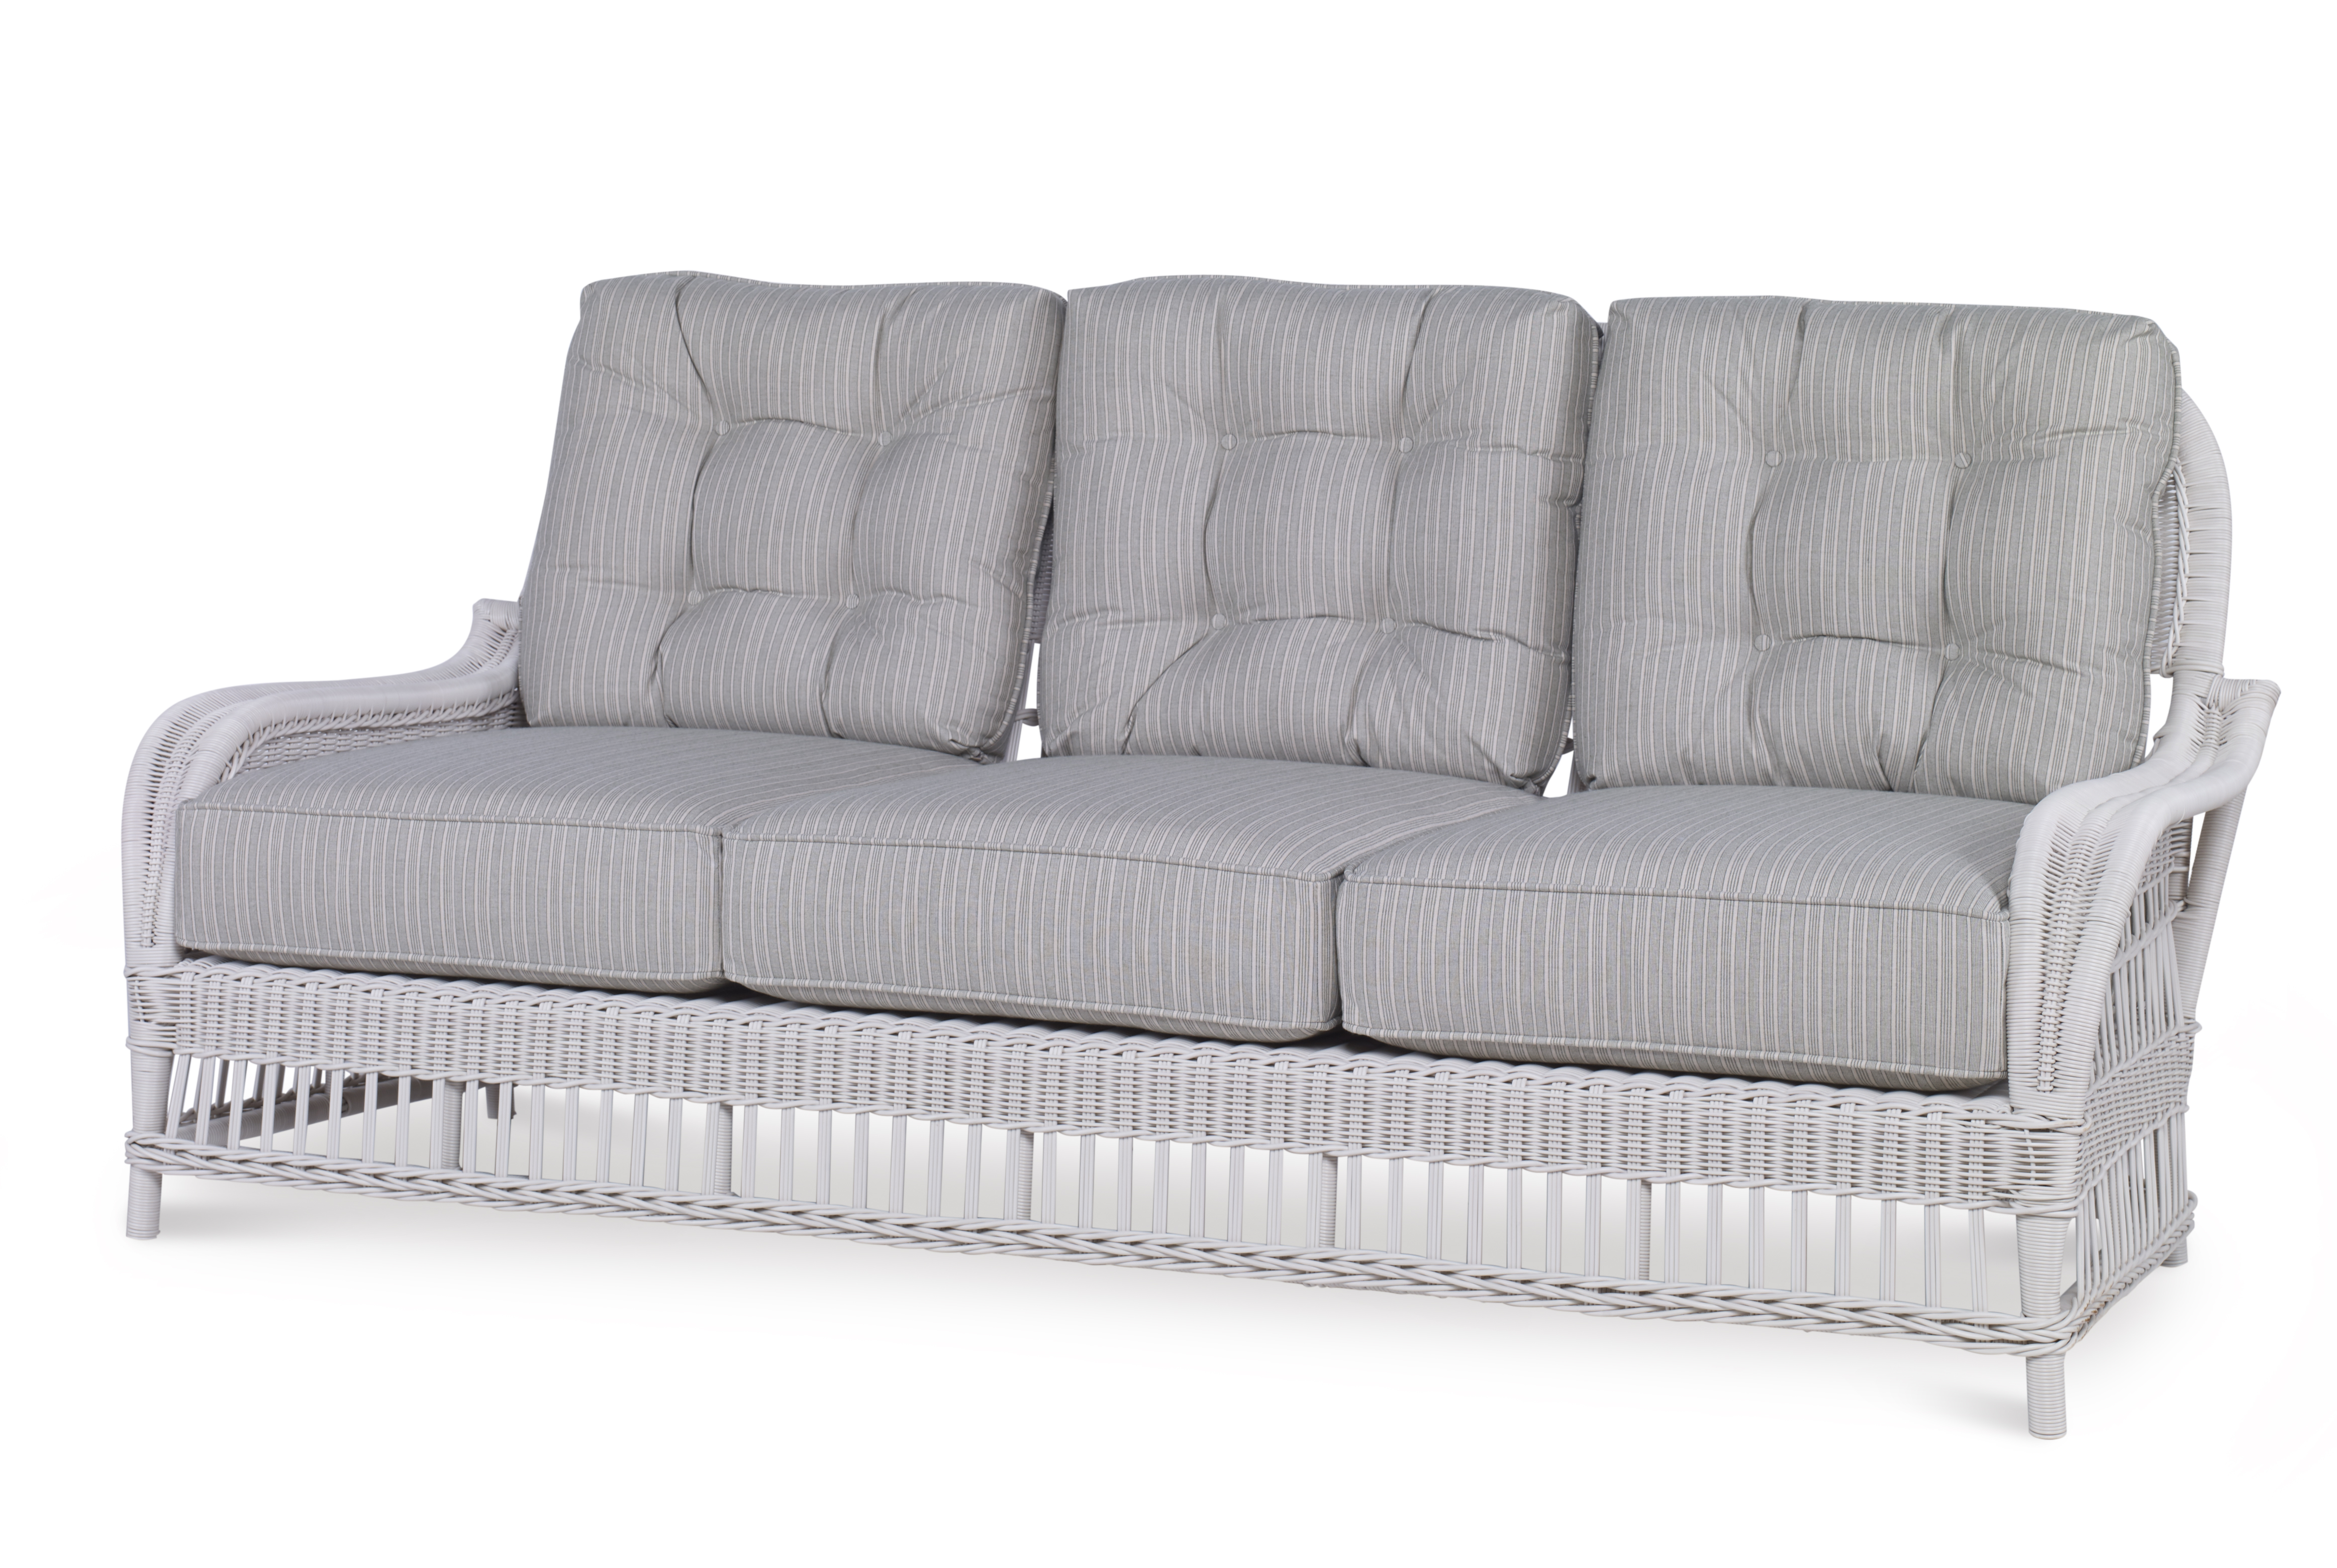 Open Weave Rattan Sofa Mid Century Patio Picks Furniture Lighting And Decor